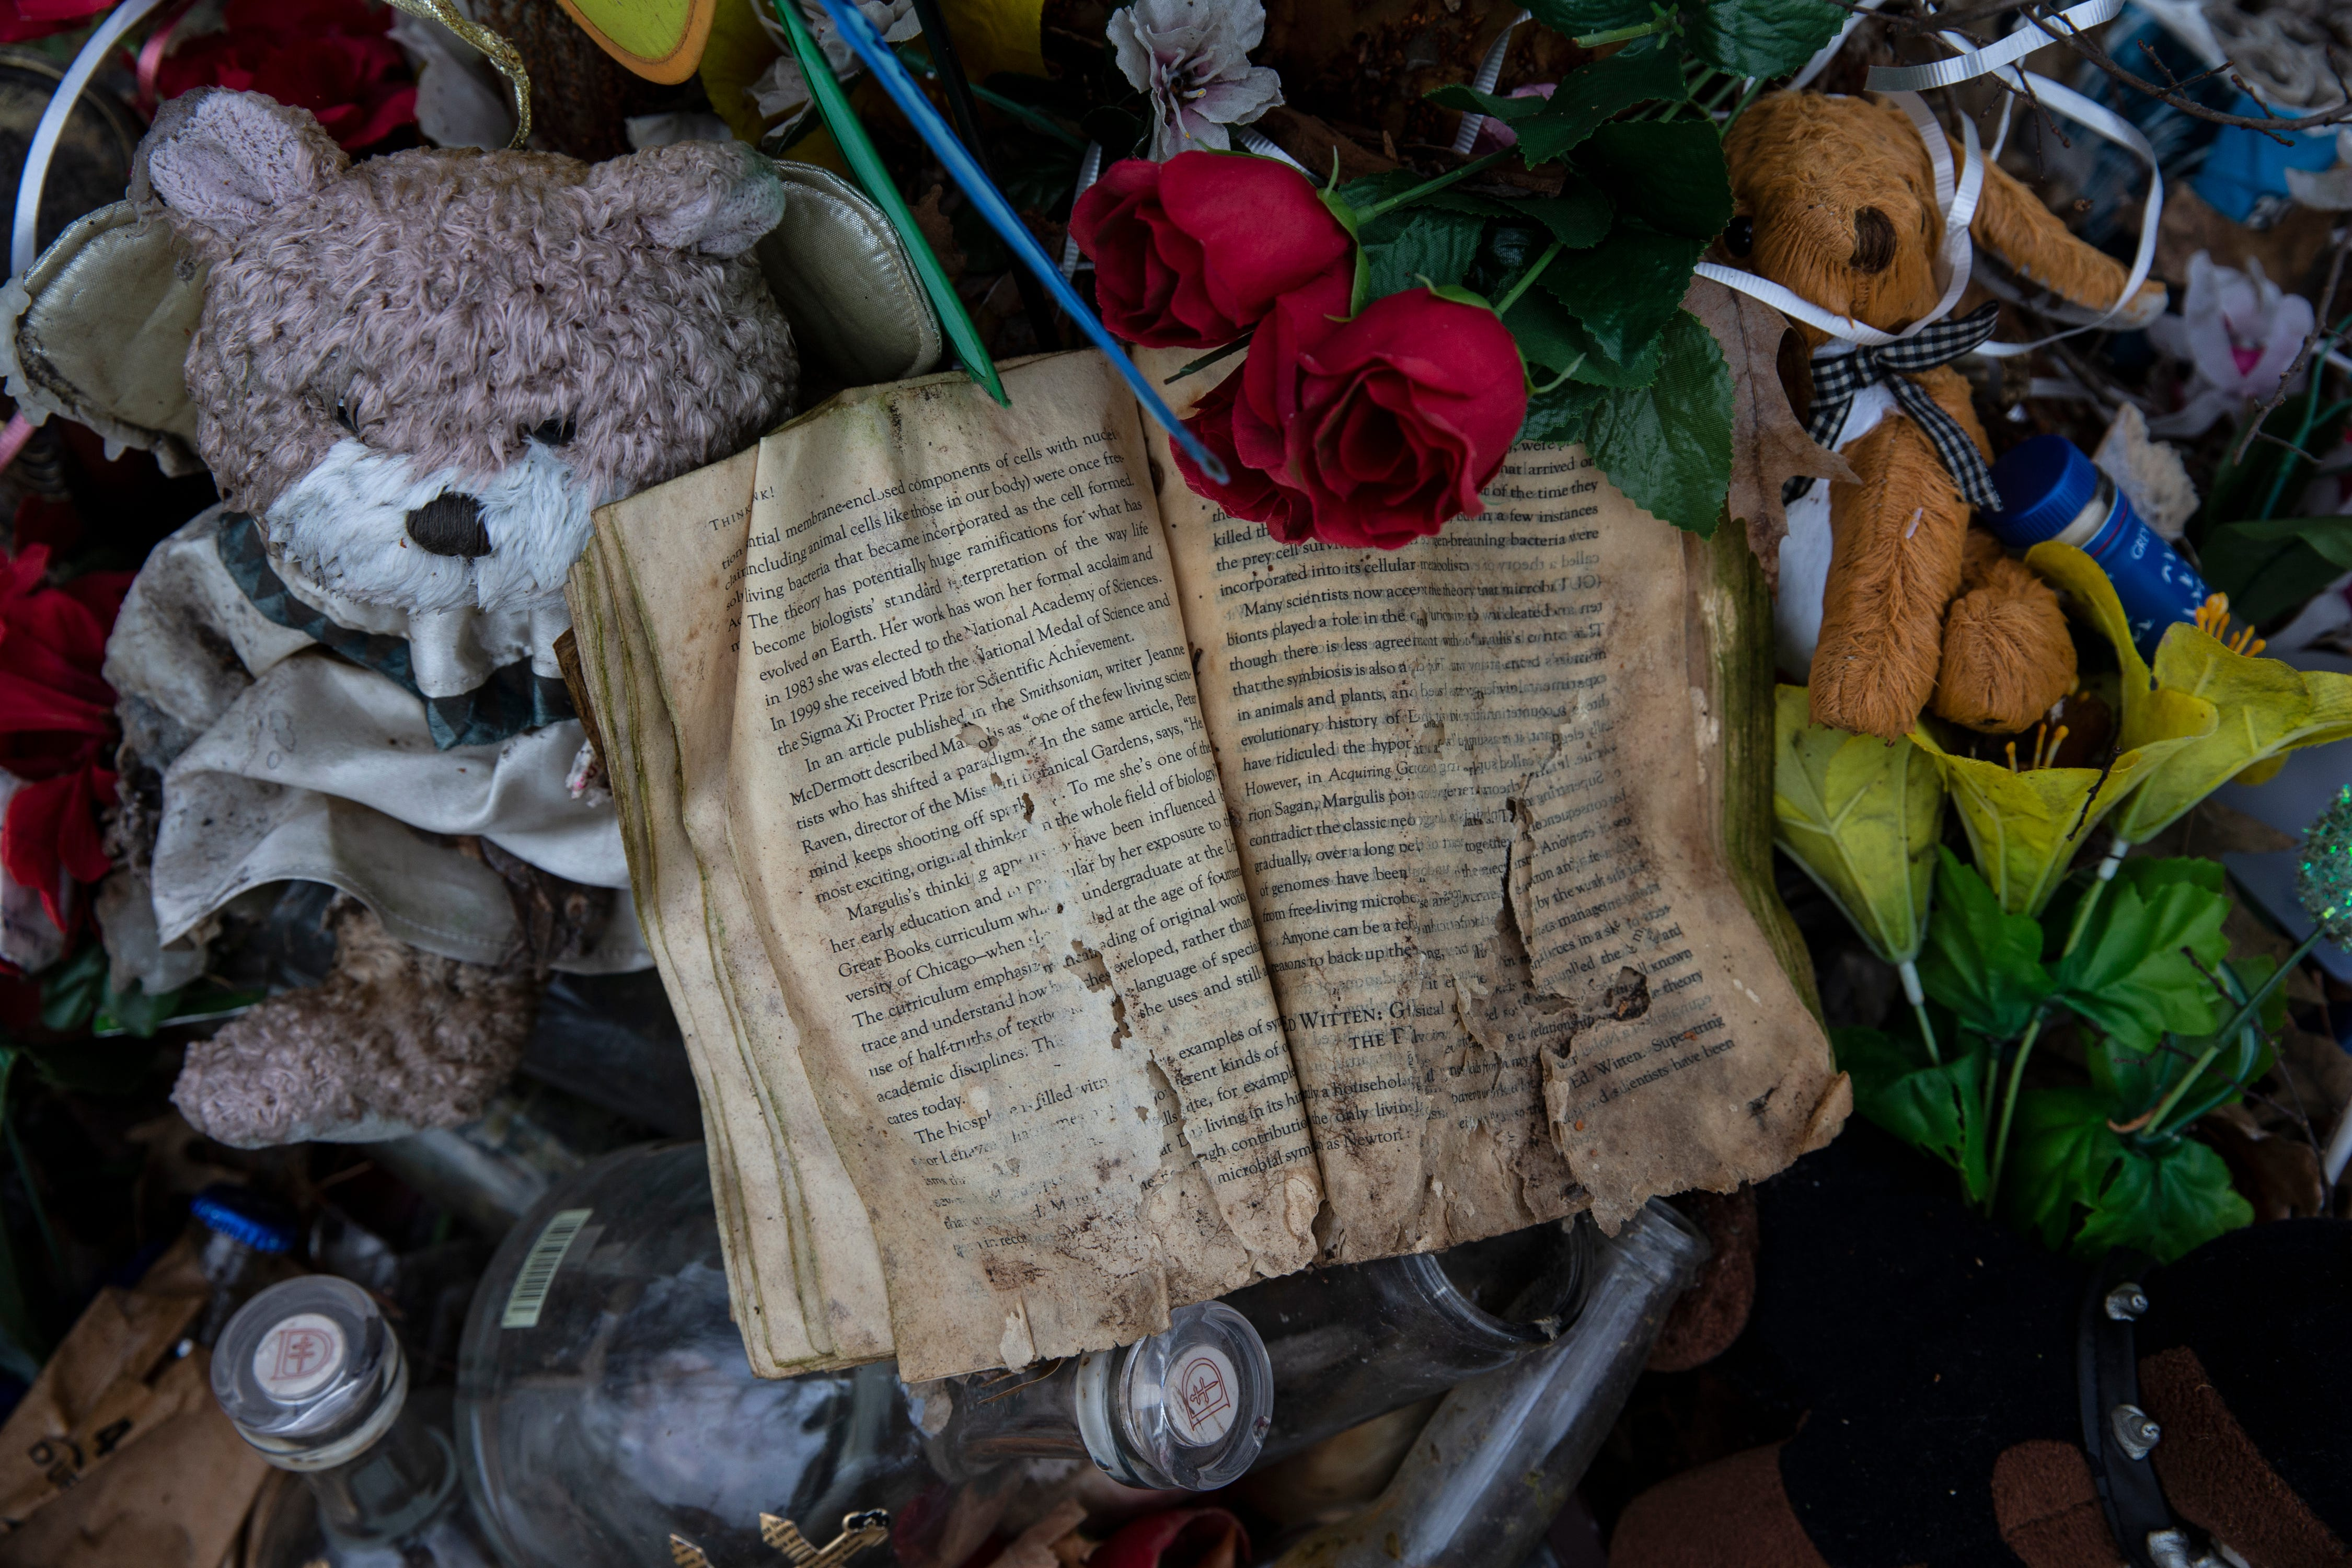 """The book, """"Th!nk, Why Crucial Decisions Can't Be Made in the blink of an Eye,"""" lies open at a makeshift memorial to Deshawn Brown, 30, who died after being shot near 41st and Broadway. March 21, 2019"""